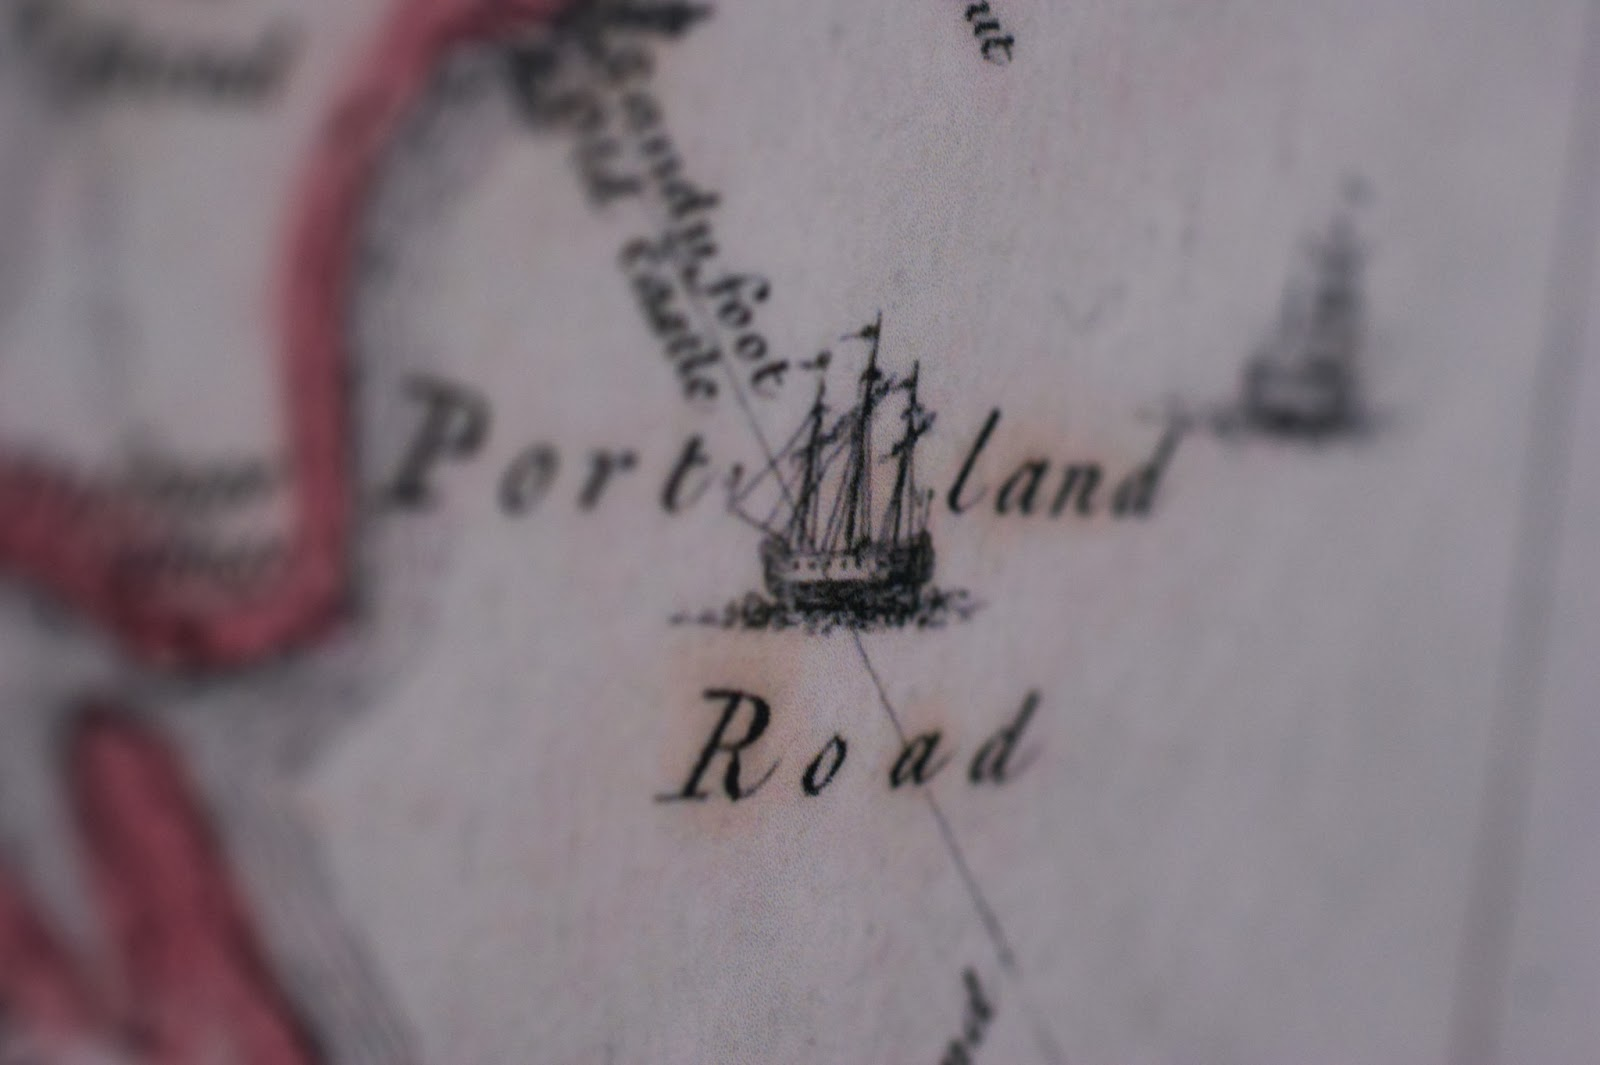 A close-up shot of an old map of Weymouth and Portland showing the words Portland Road